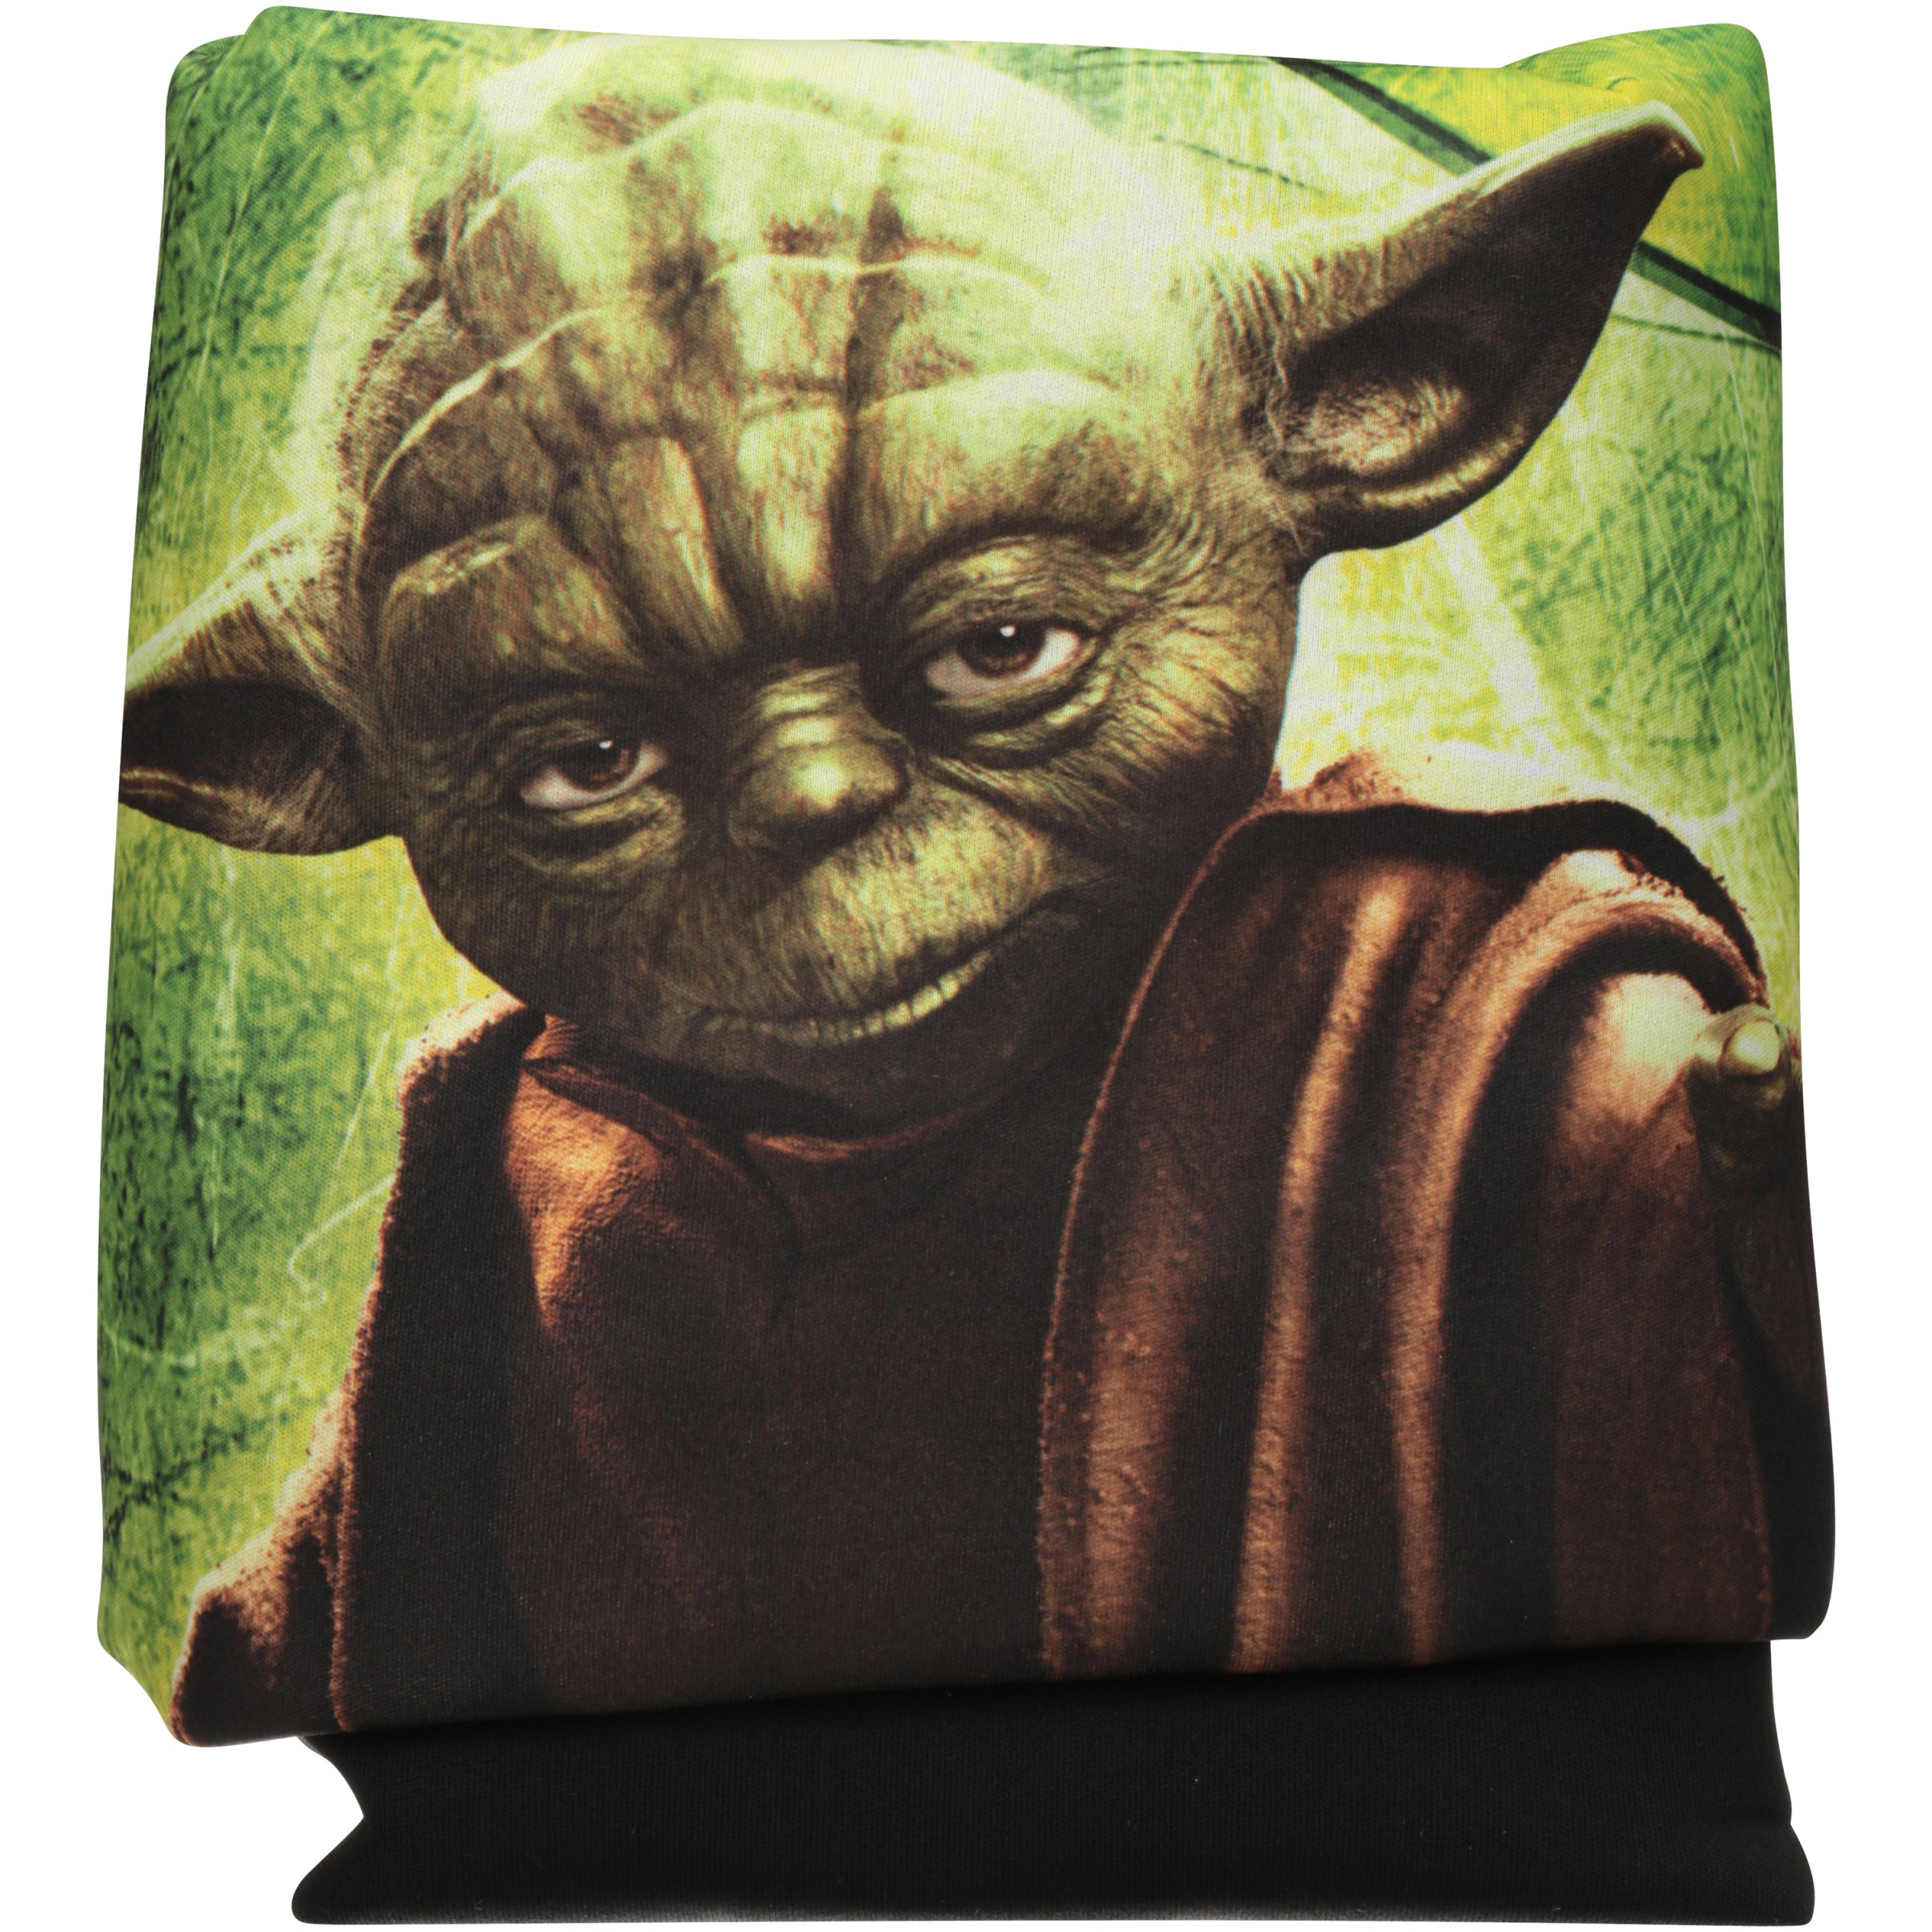 Star Wars Yoda Seat Cover